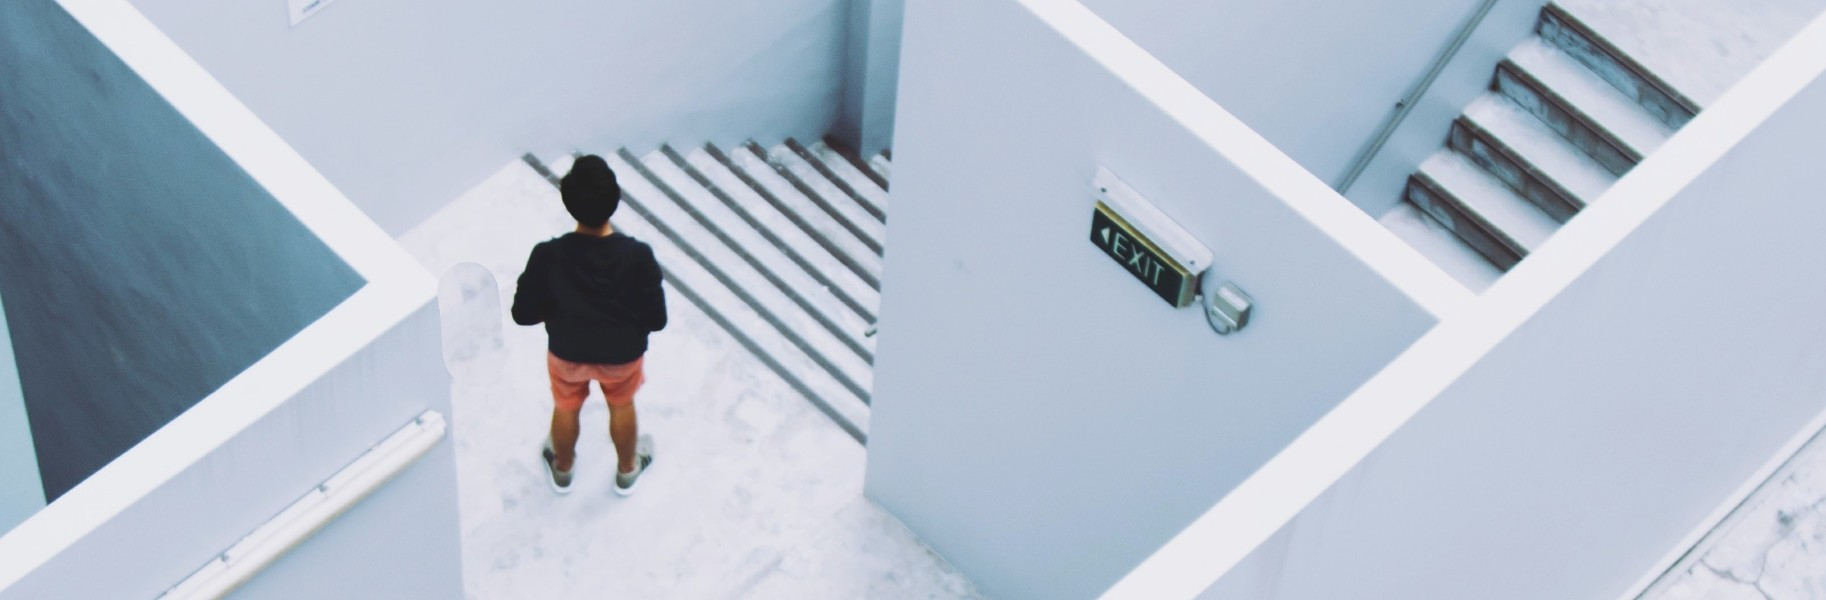 Image of Figure in white stairwell from above